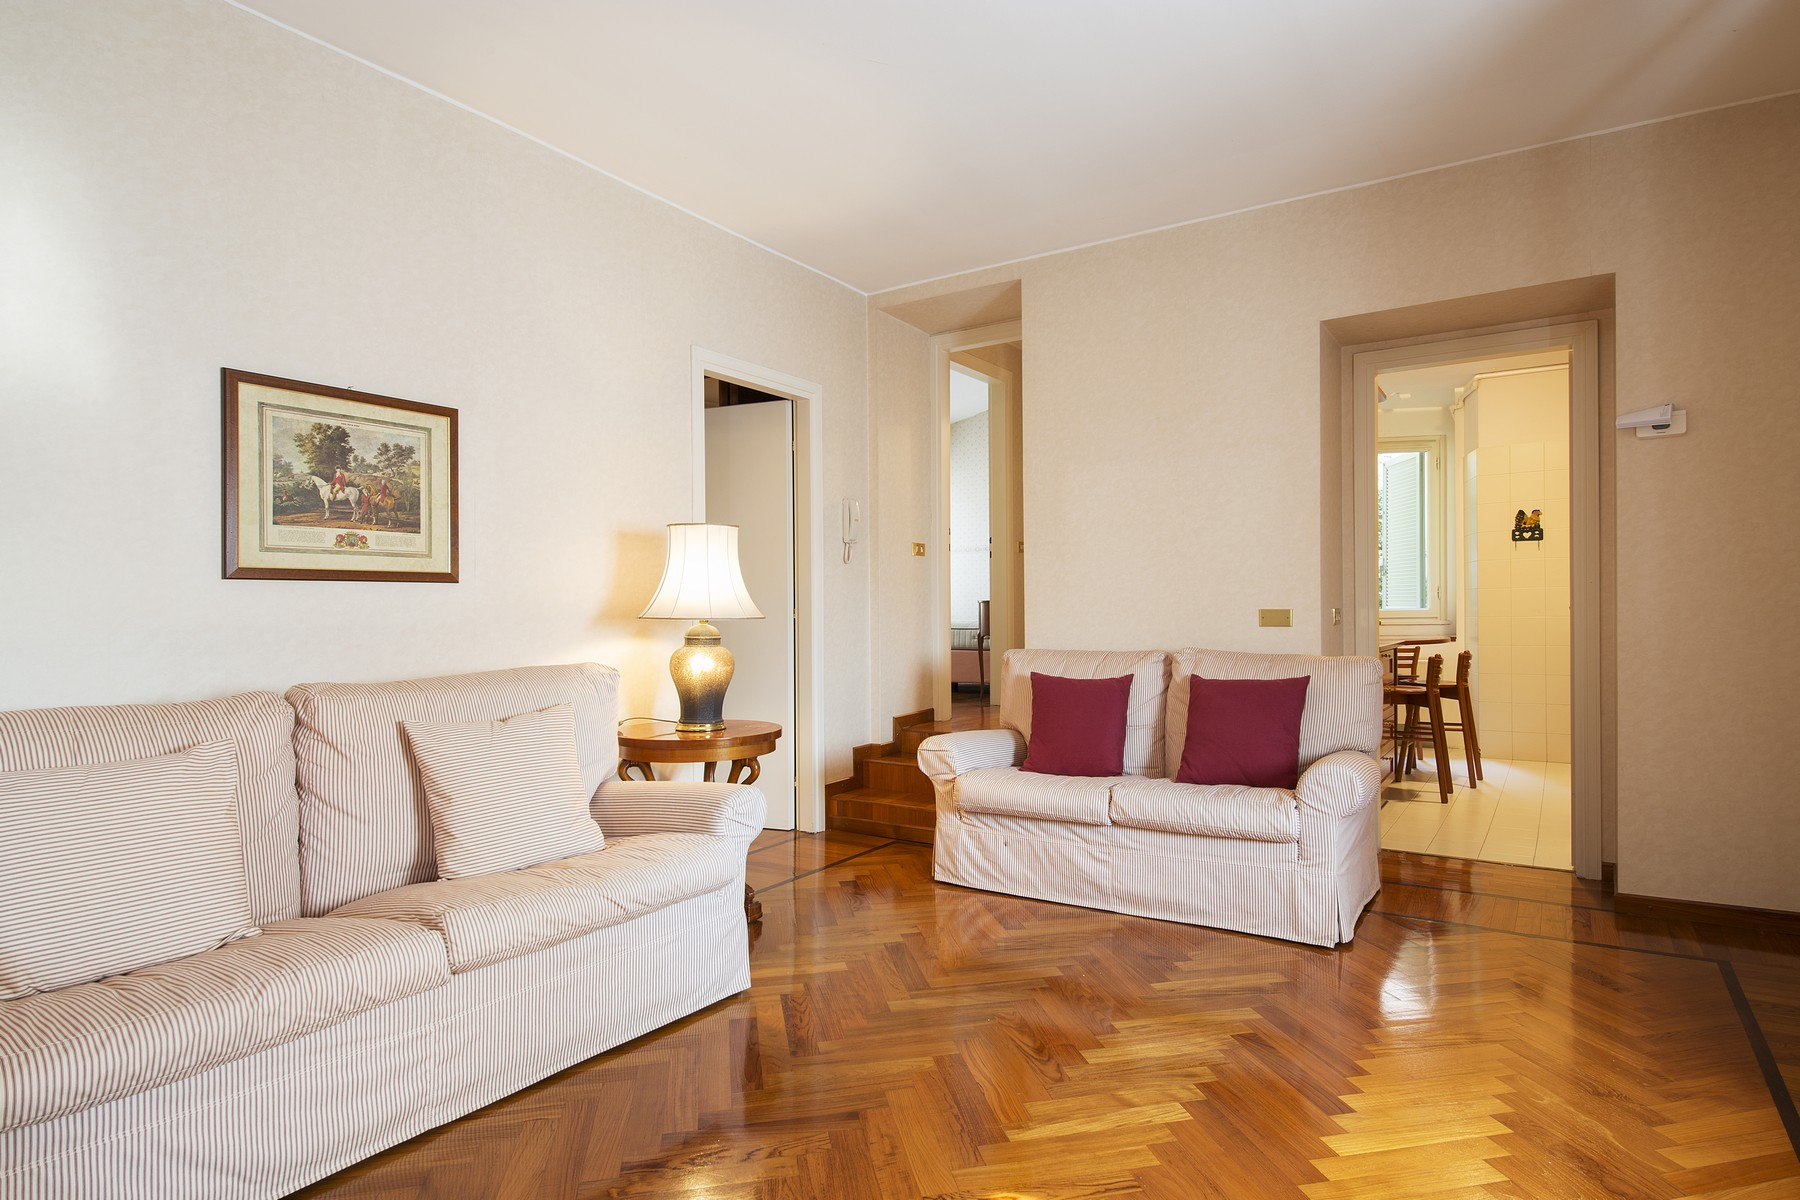 Additional photo for property listing at Elegant apartment in Villa Taverna via Roma Torno, Como 22020 Italie